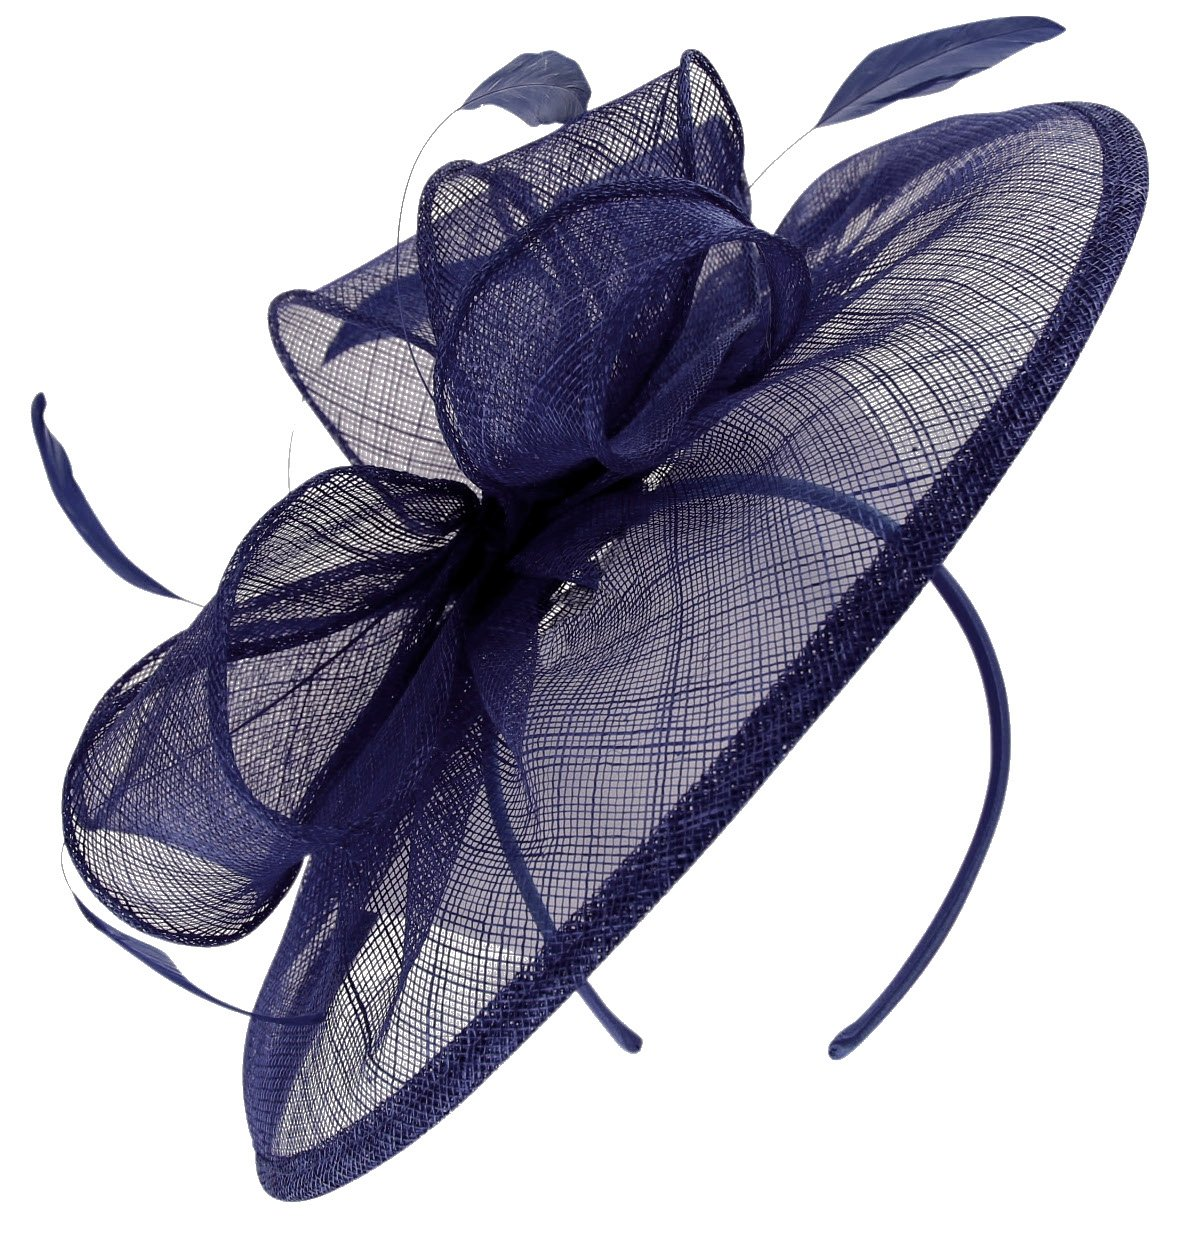 Failsworth Millinery Sinamay Disc Headpiece in Cobalt, Size: One Size